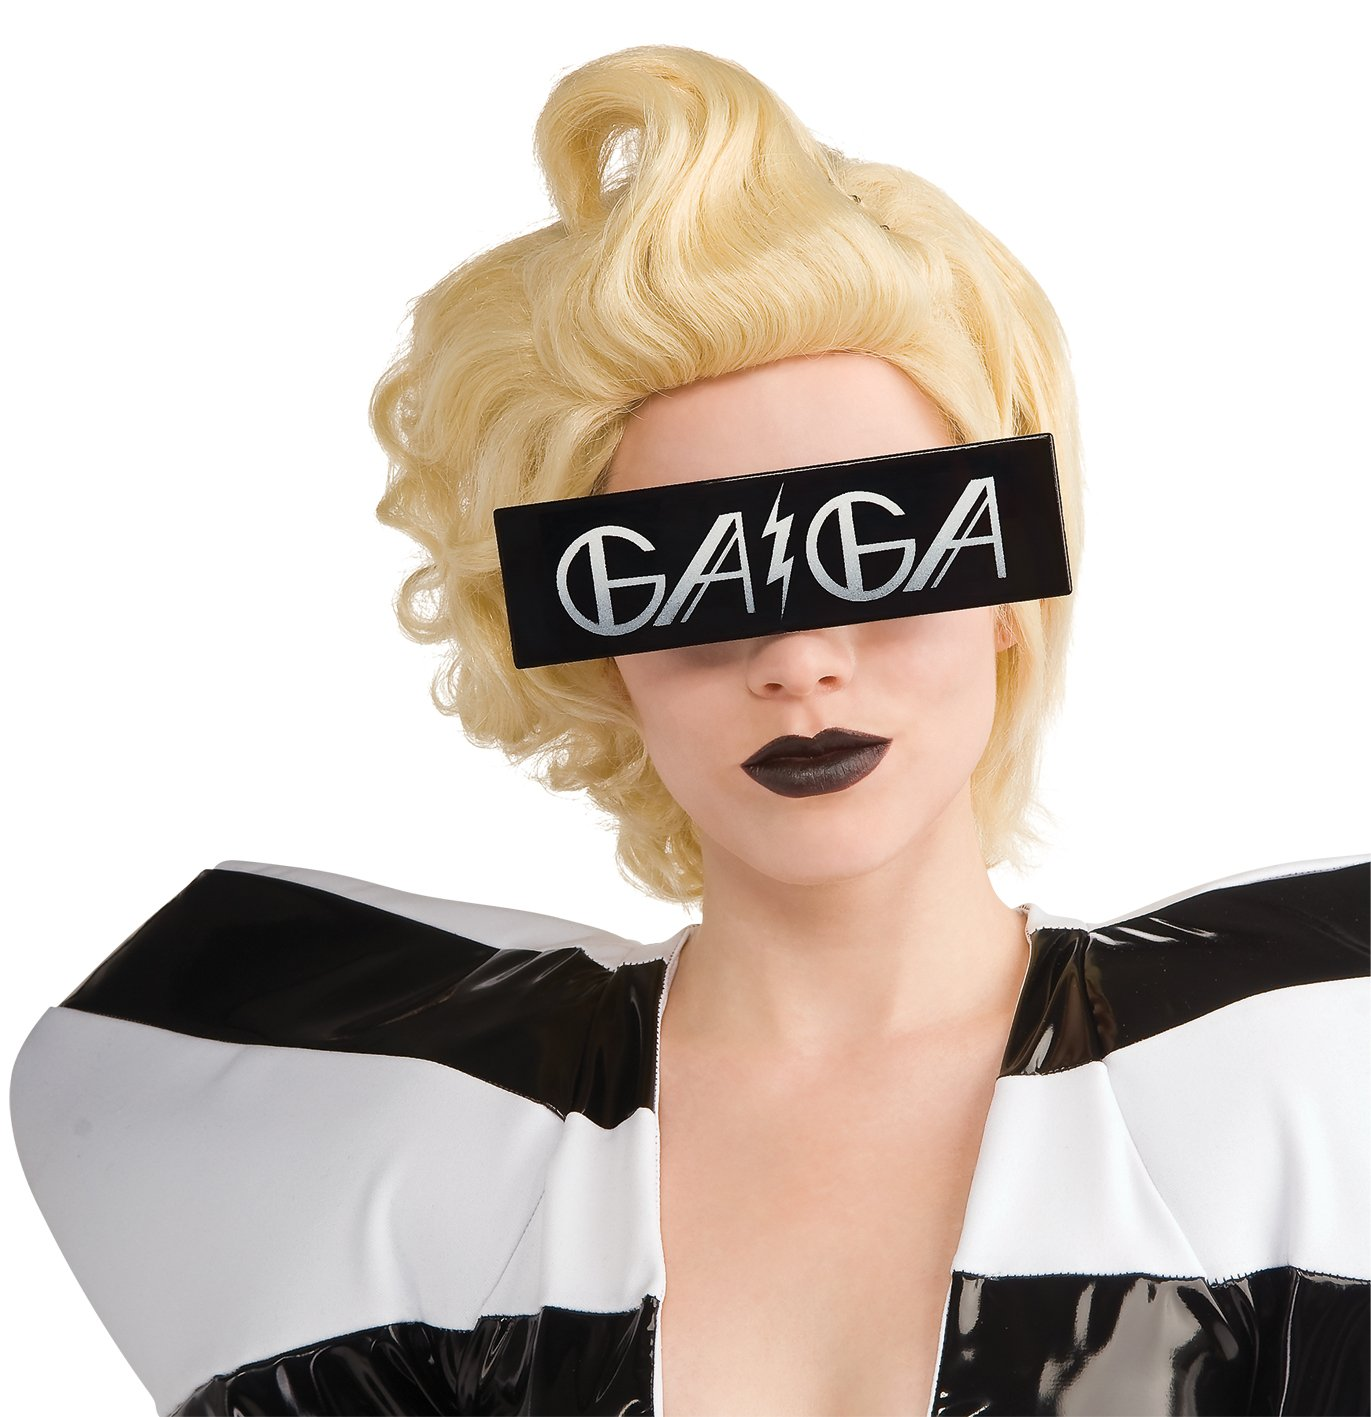 Rubies Lady Gaga glasses. (accesorio de disfraz): Amazon.es ...